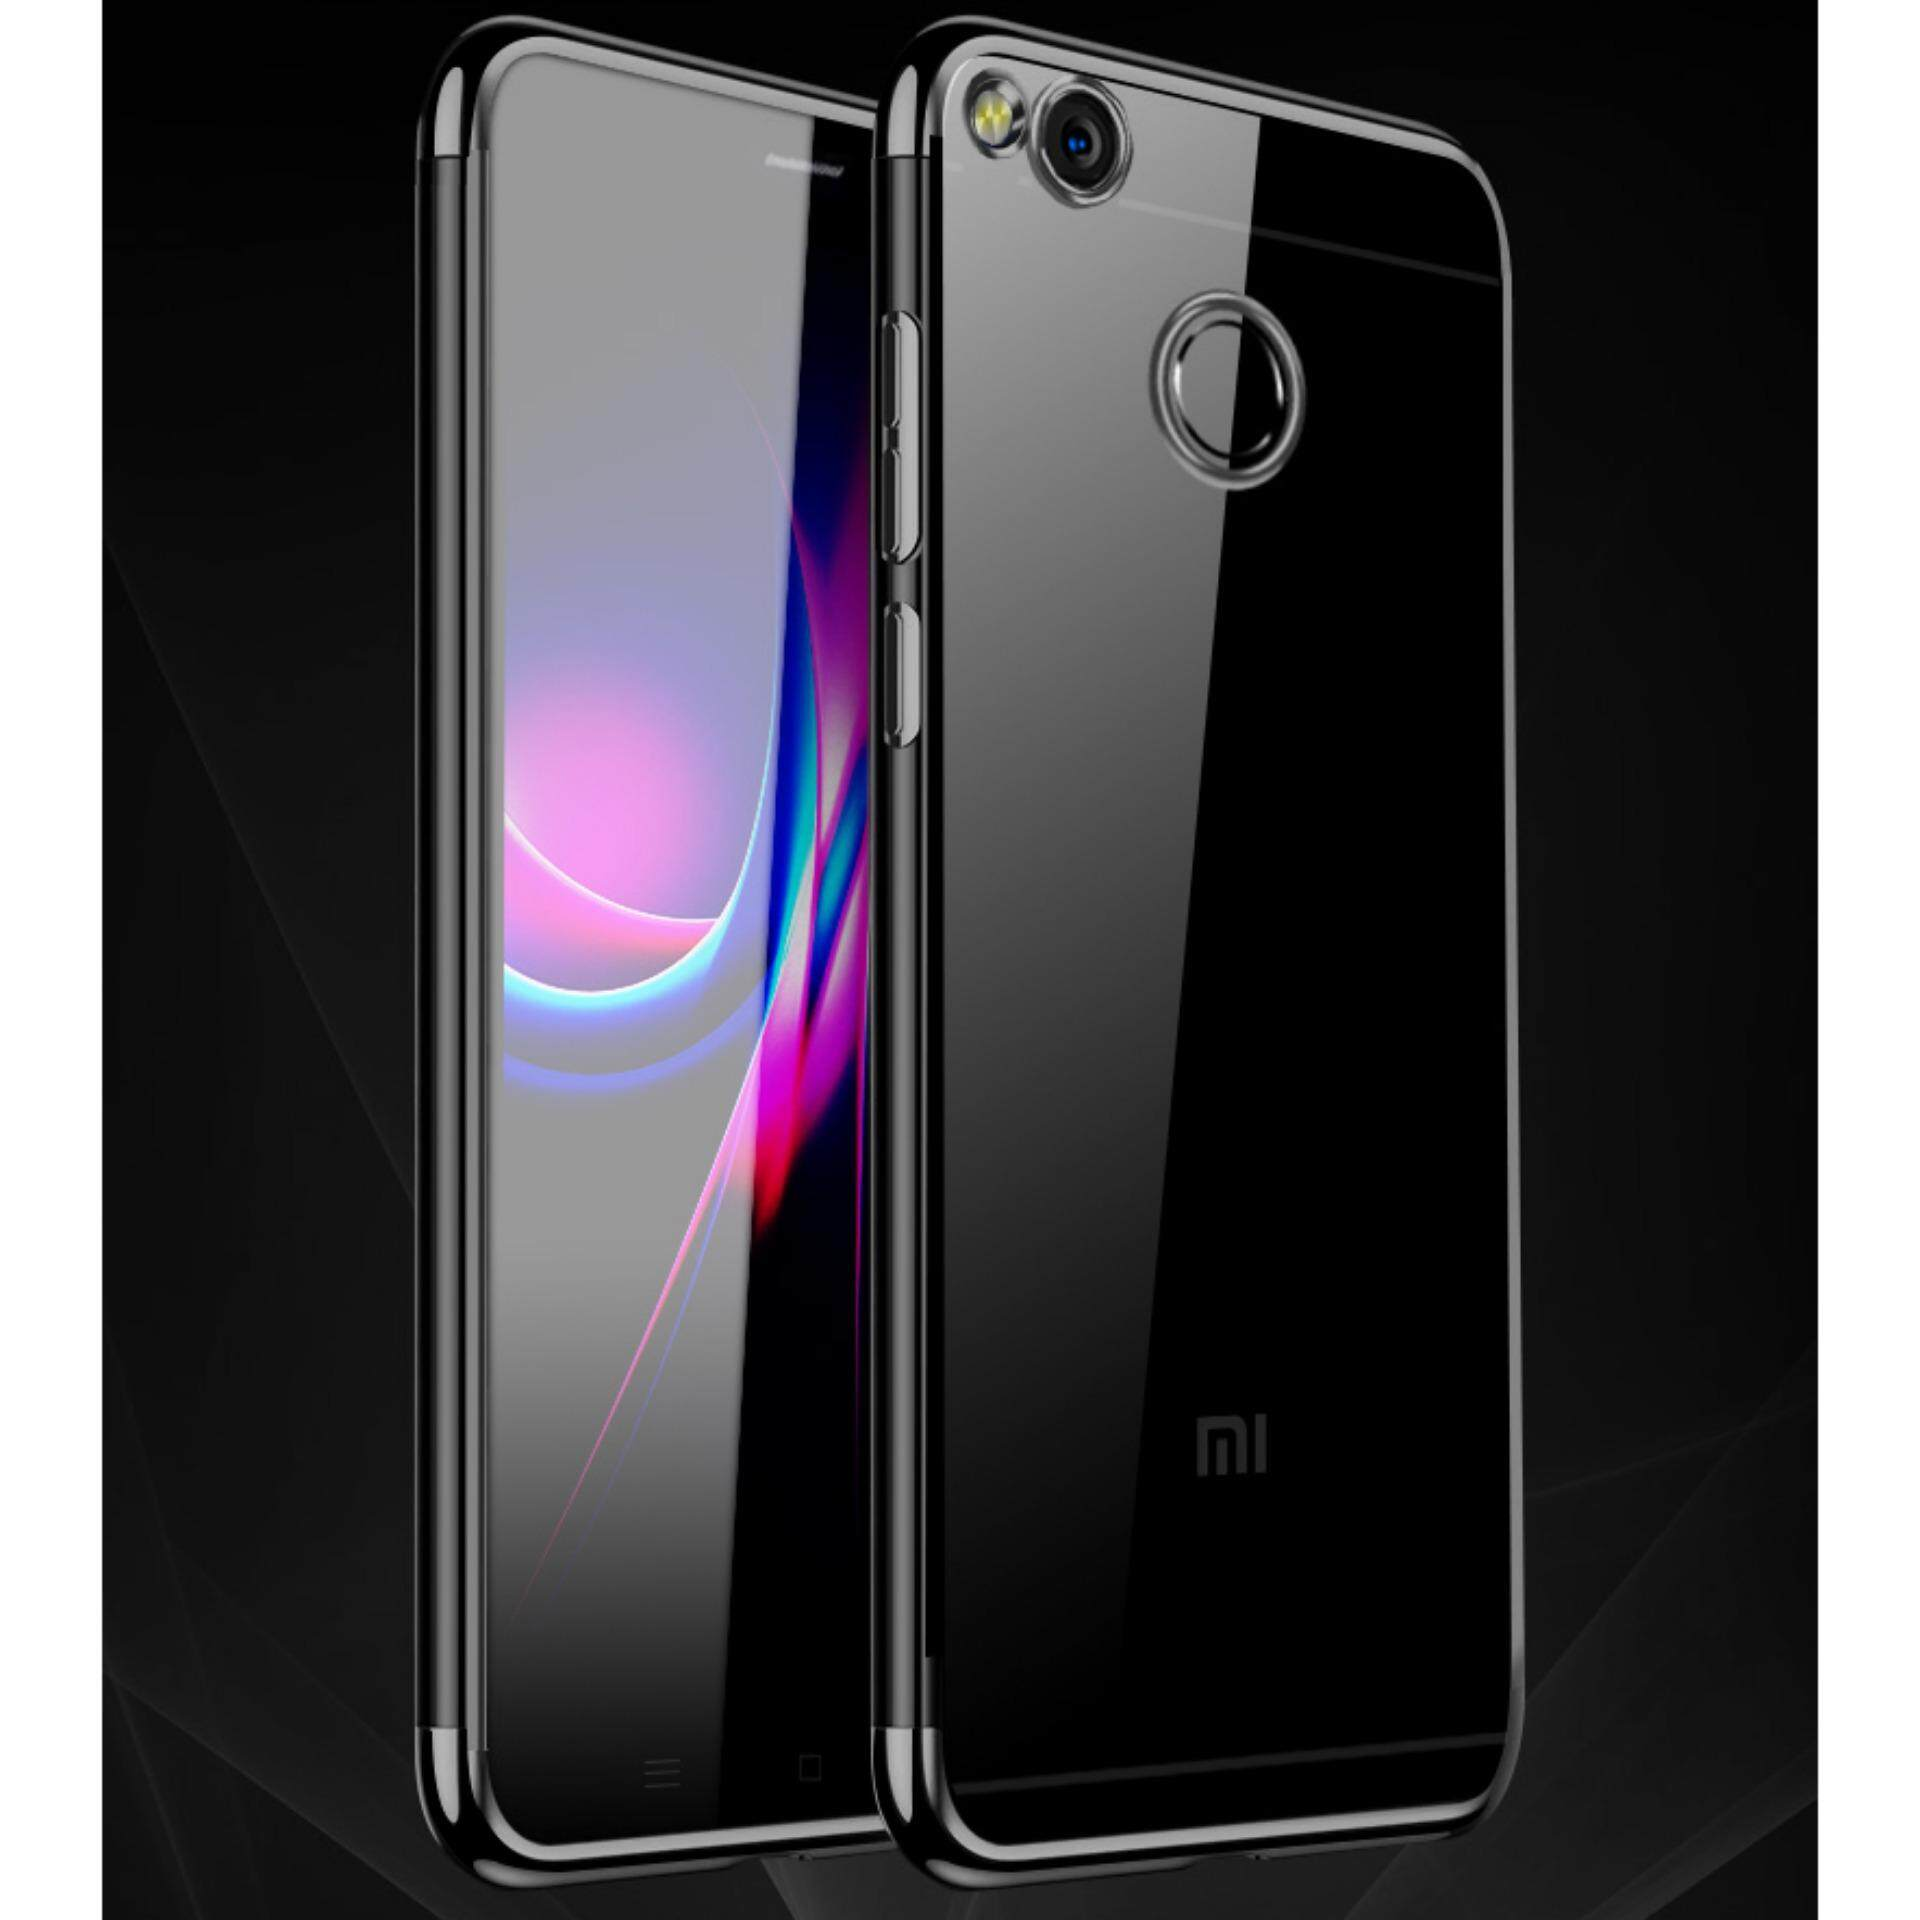 Features For Redmi 4x Soft Case Transparent Plating Cover Xiaomi Note 3 Tempered Glass Casing Handphone Softcase Transparan Ultra Slim Tpu Silicone Clear Back